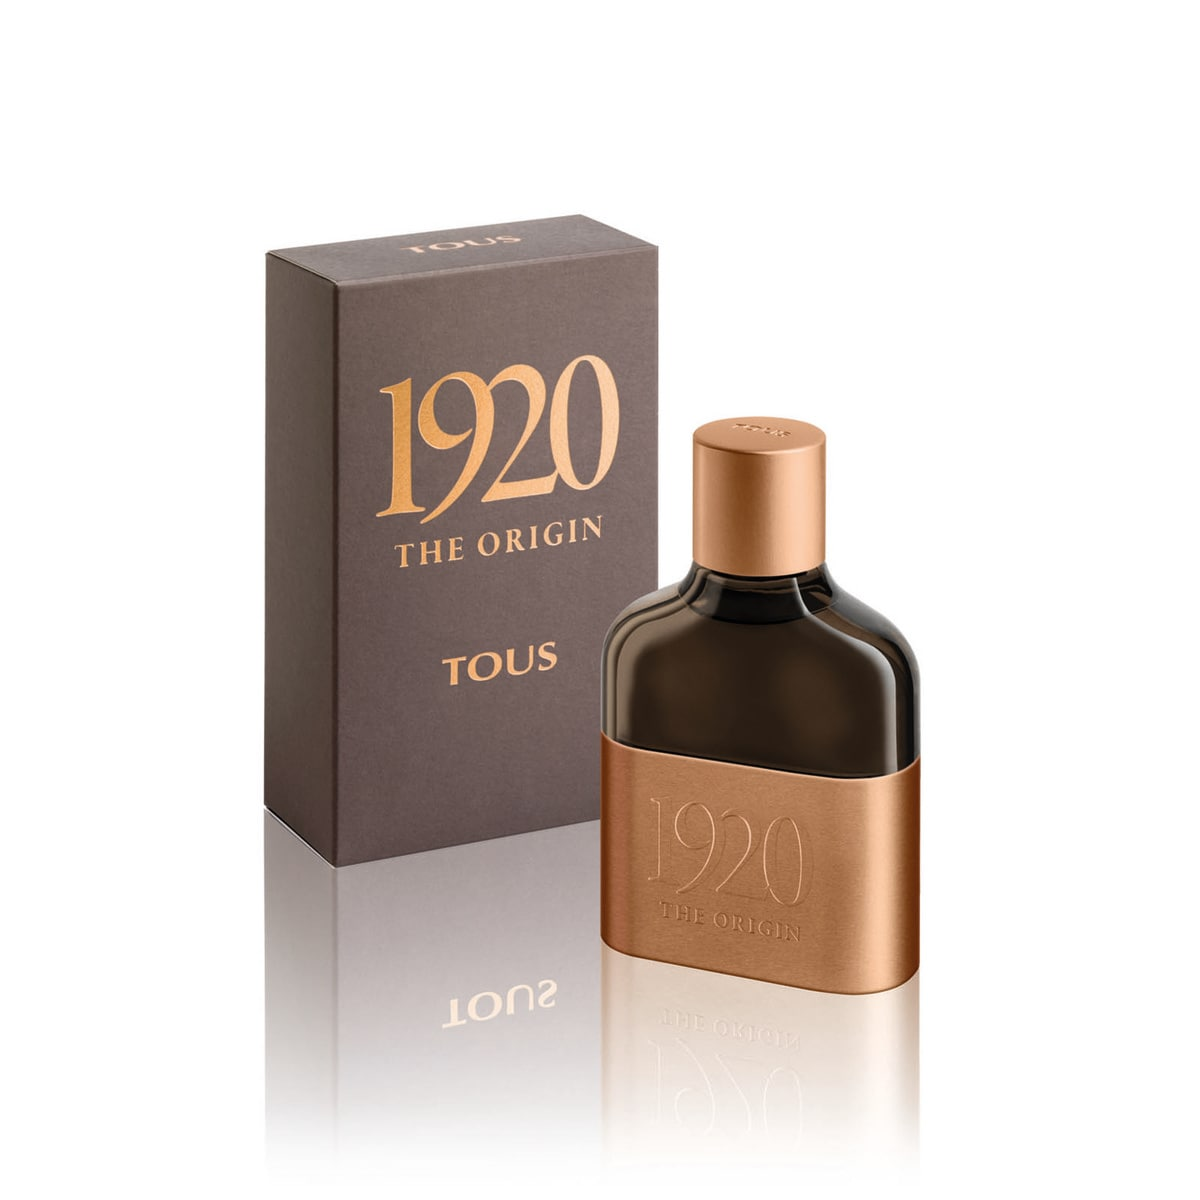 1920 The Origin Eau de Parfum - 60 ml